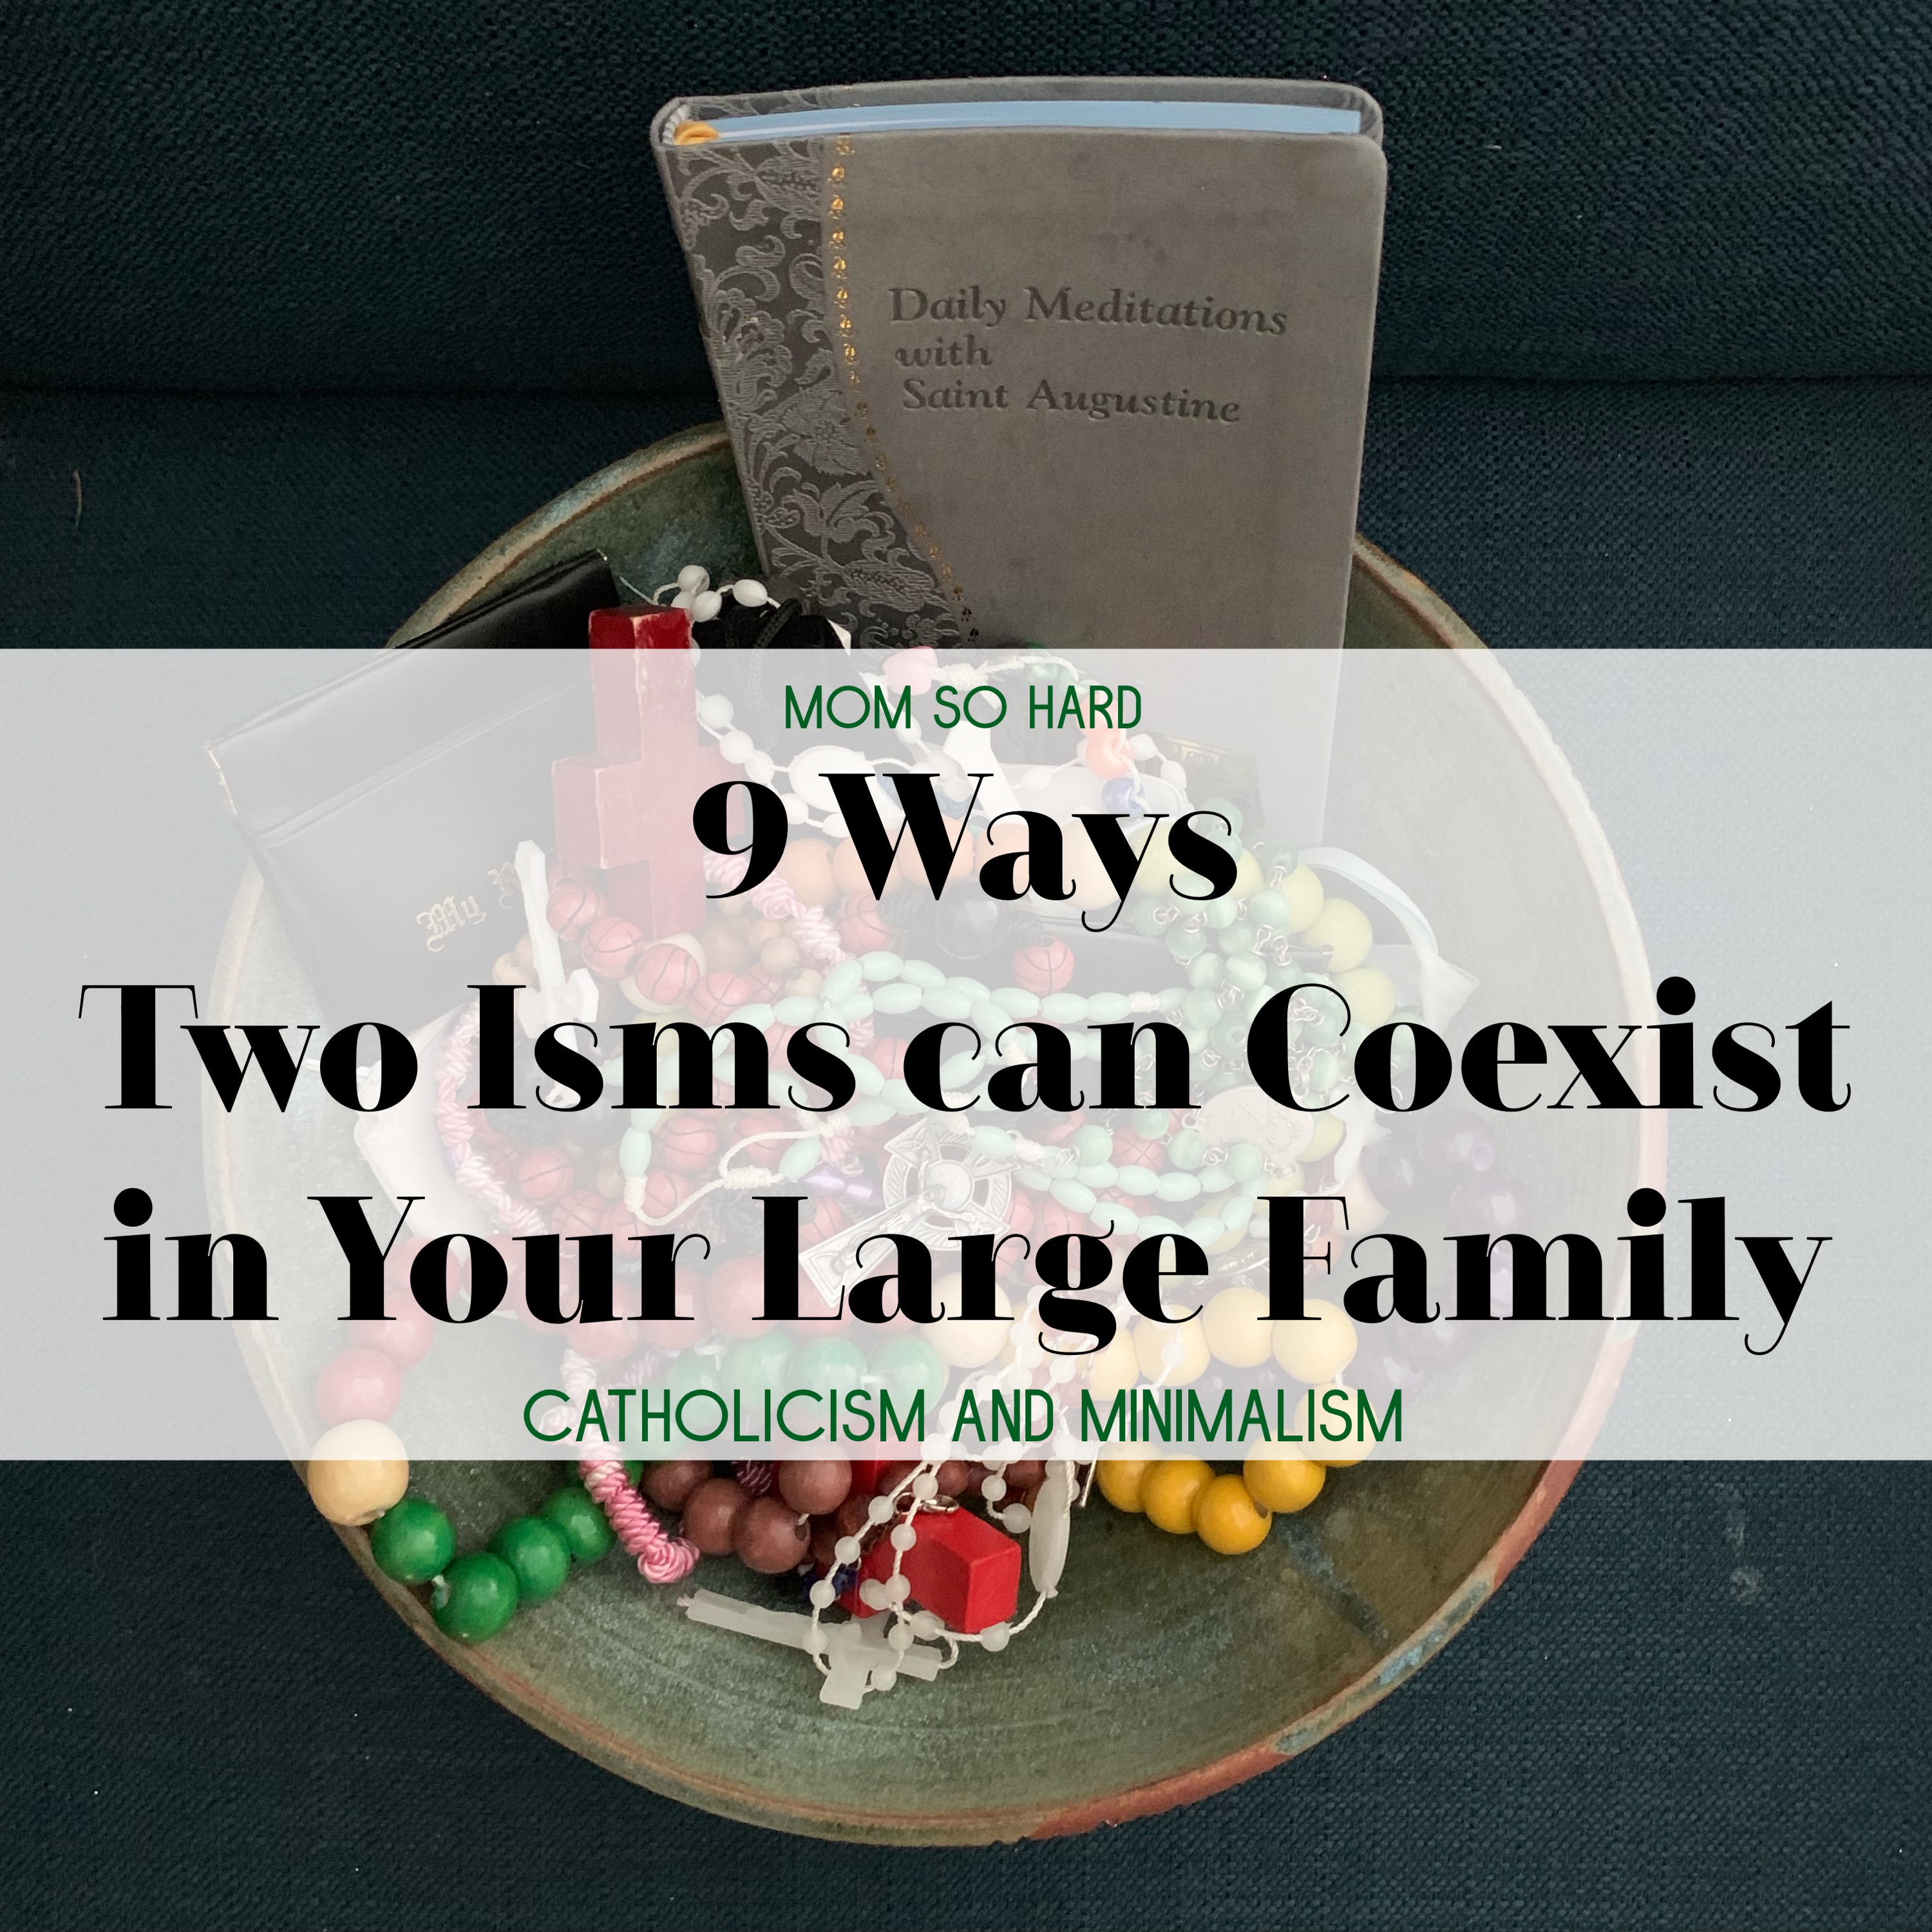 9 Ways Two Isms can Coexist in Your Large Family